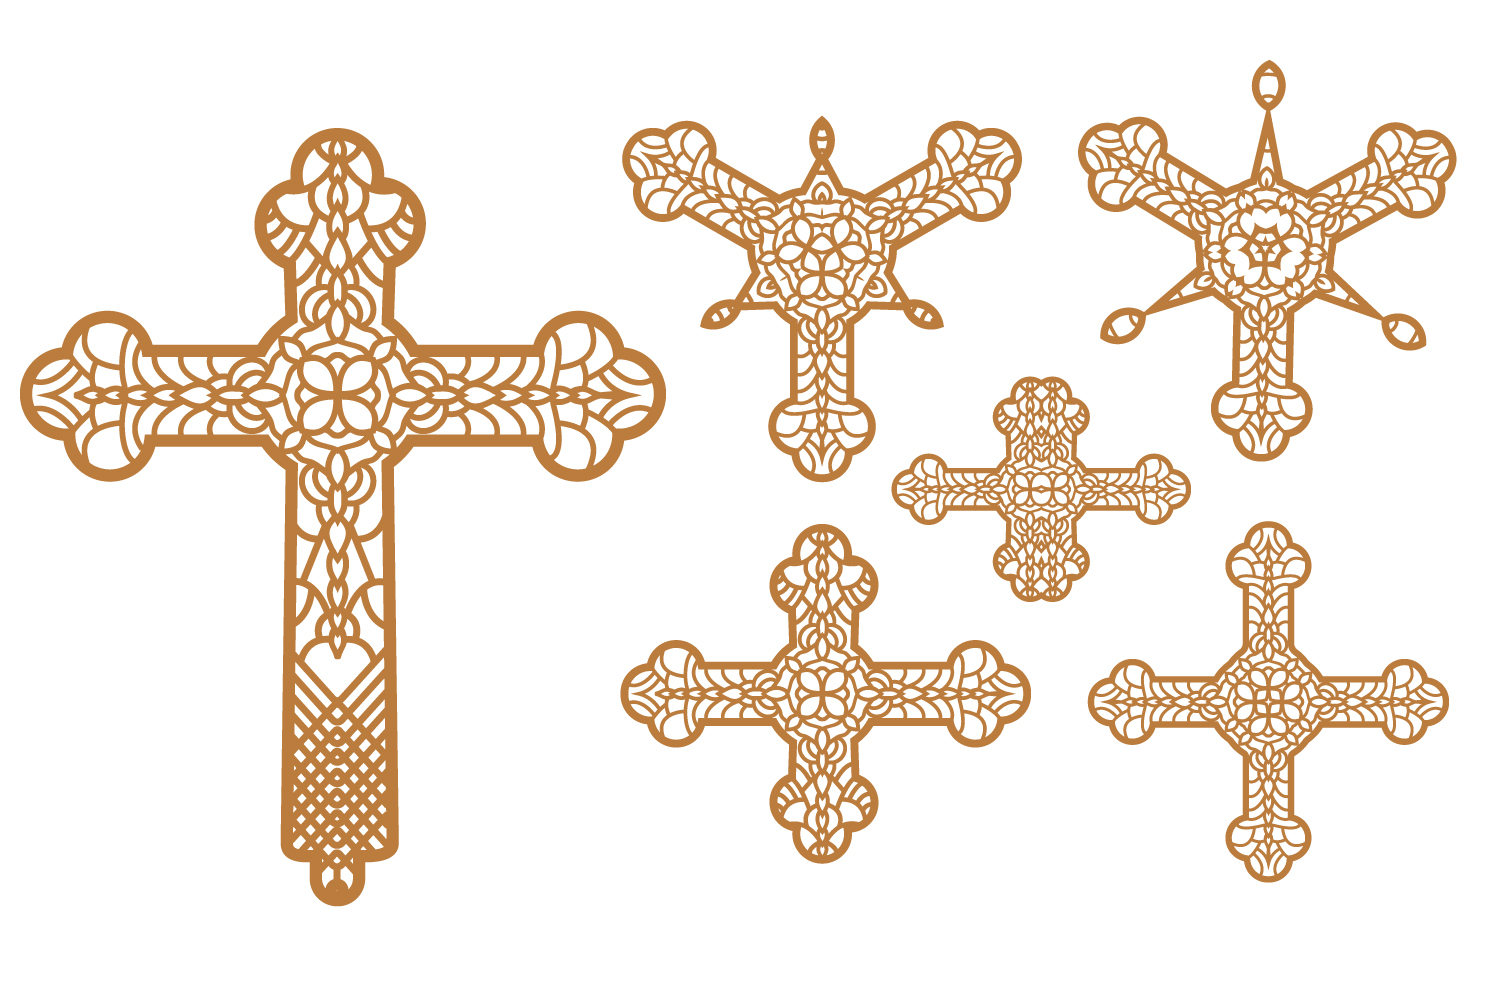 6 cross SVG and Religious Signs AI, EPS, PNG example image 2